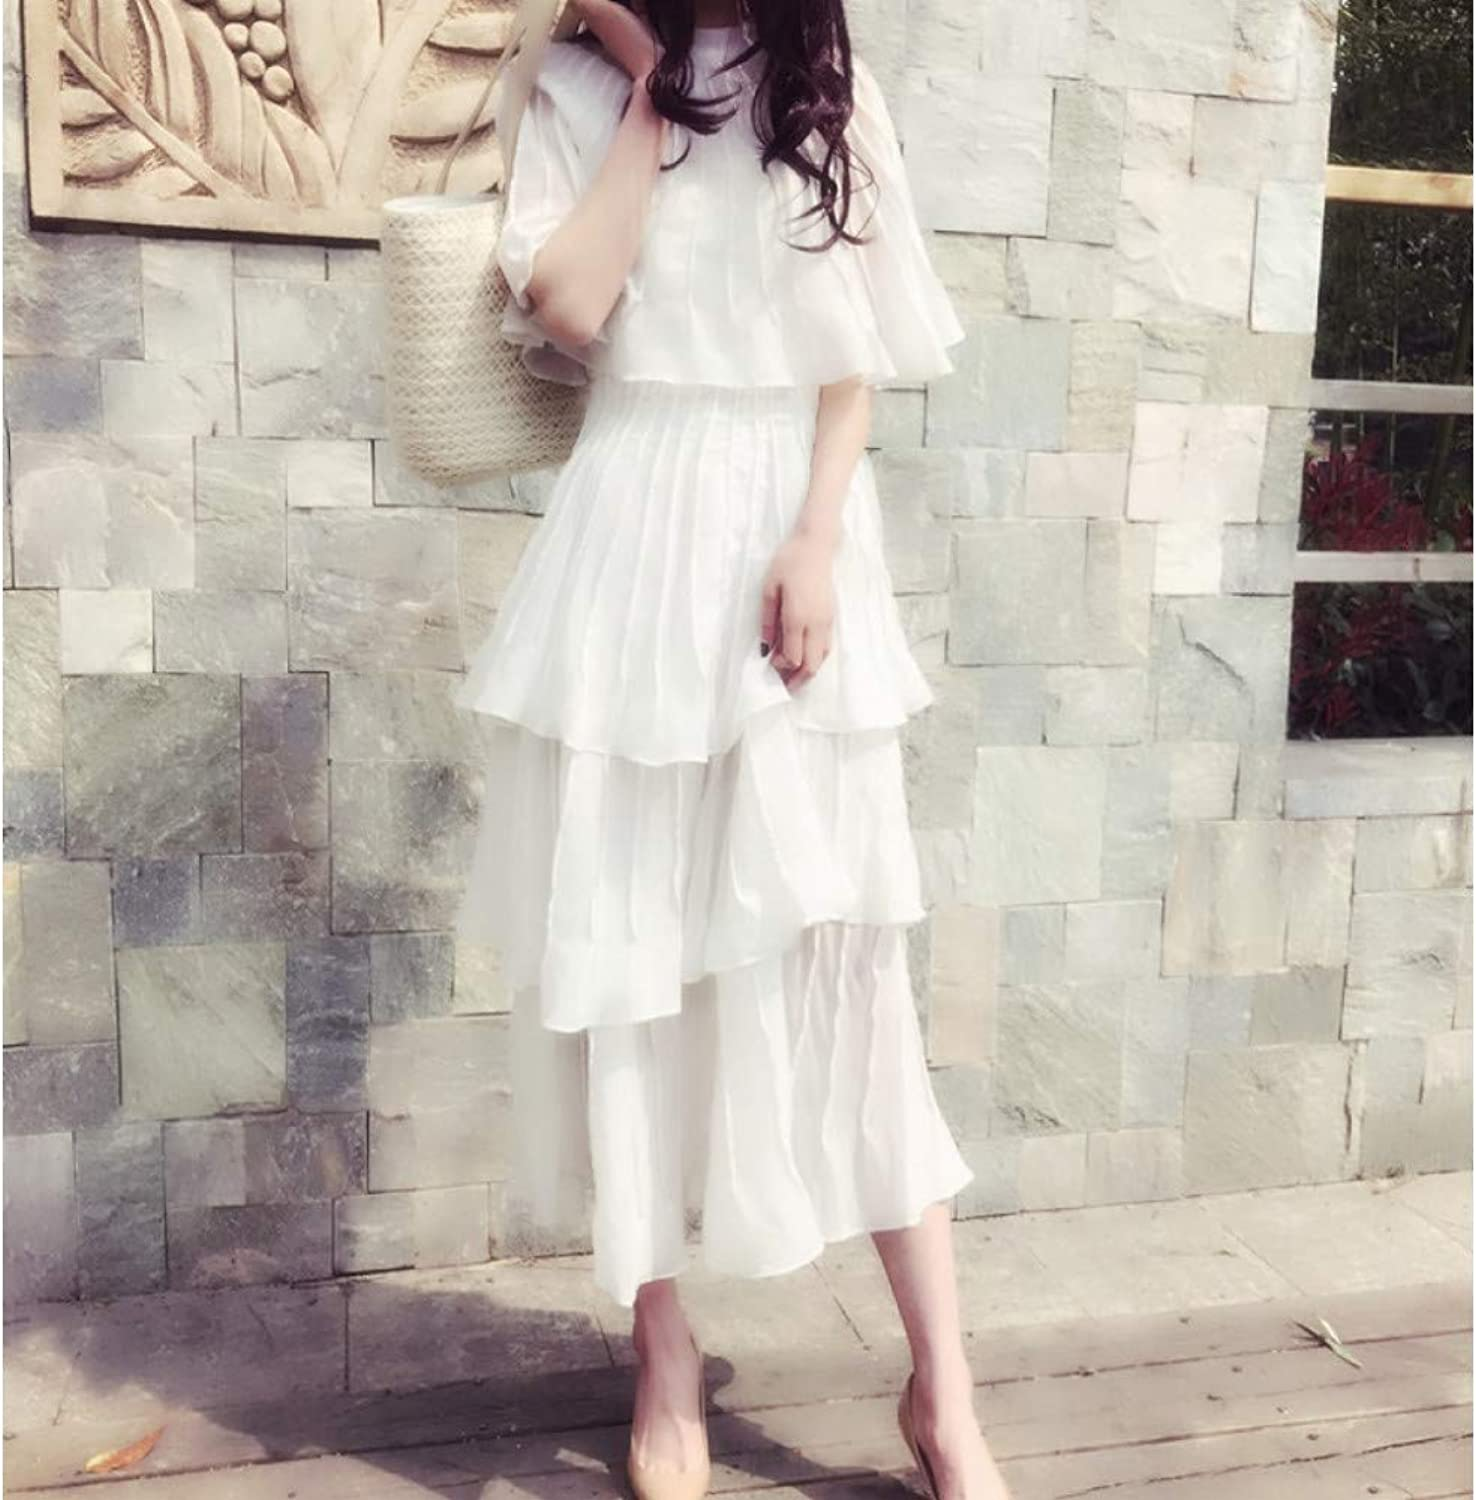 QAQBDBCKL White Fashion Pleated Coat Sleeve Daily Office Ruffle Dress